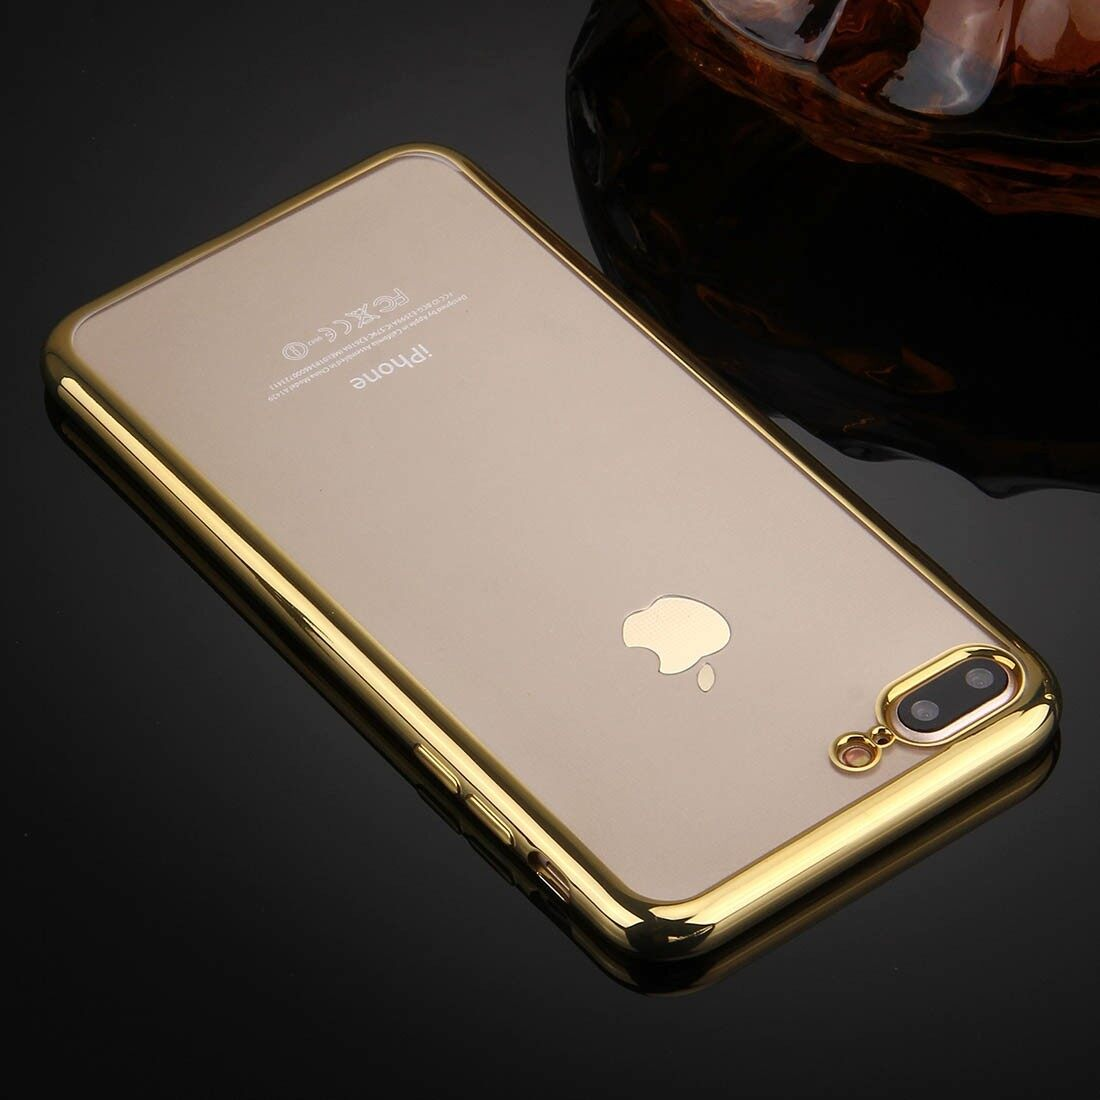 ViLi Apple iPhone 7 Plus TPU Silicone Ultra thin Luxury Slim Electroplating Crystal Clear Transparent Soft Back Cover Case Covers (Luxury Gold) **Free x1 Tempered Glass Worth Rm 39**